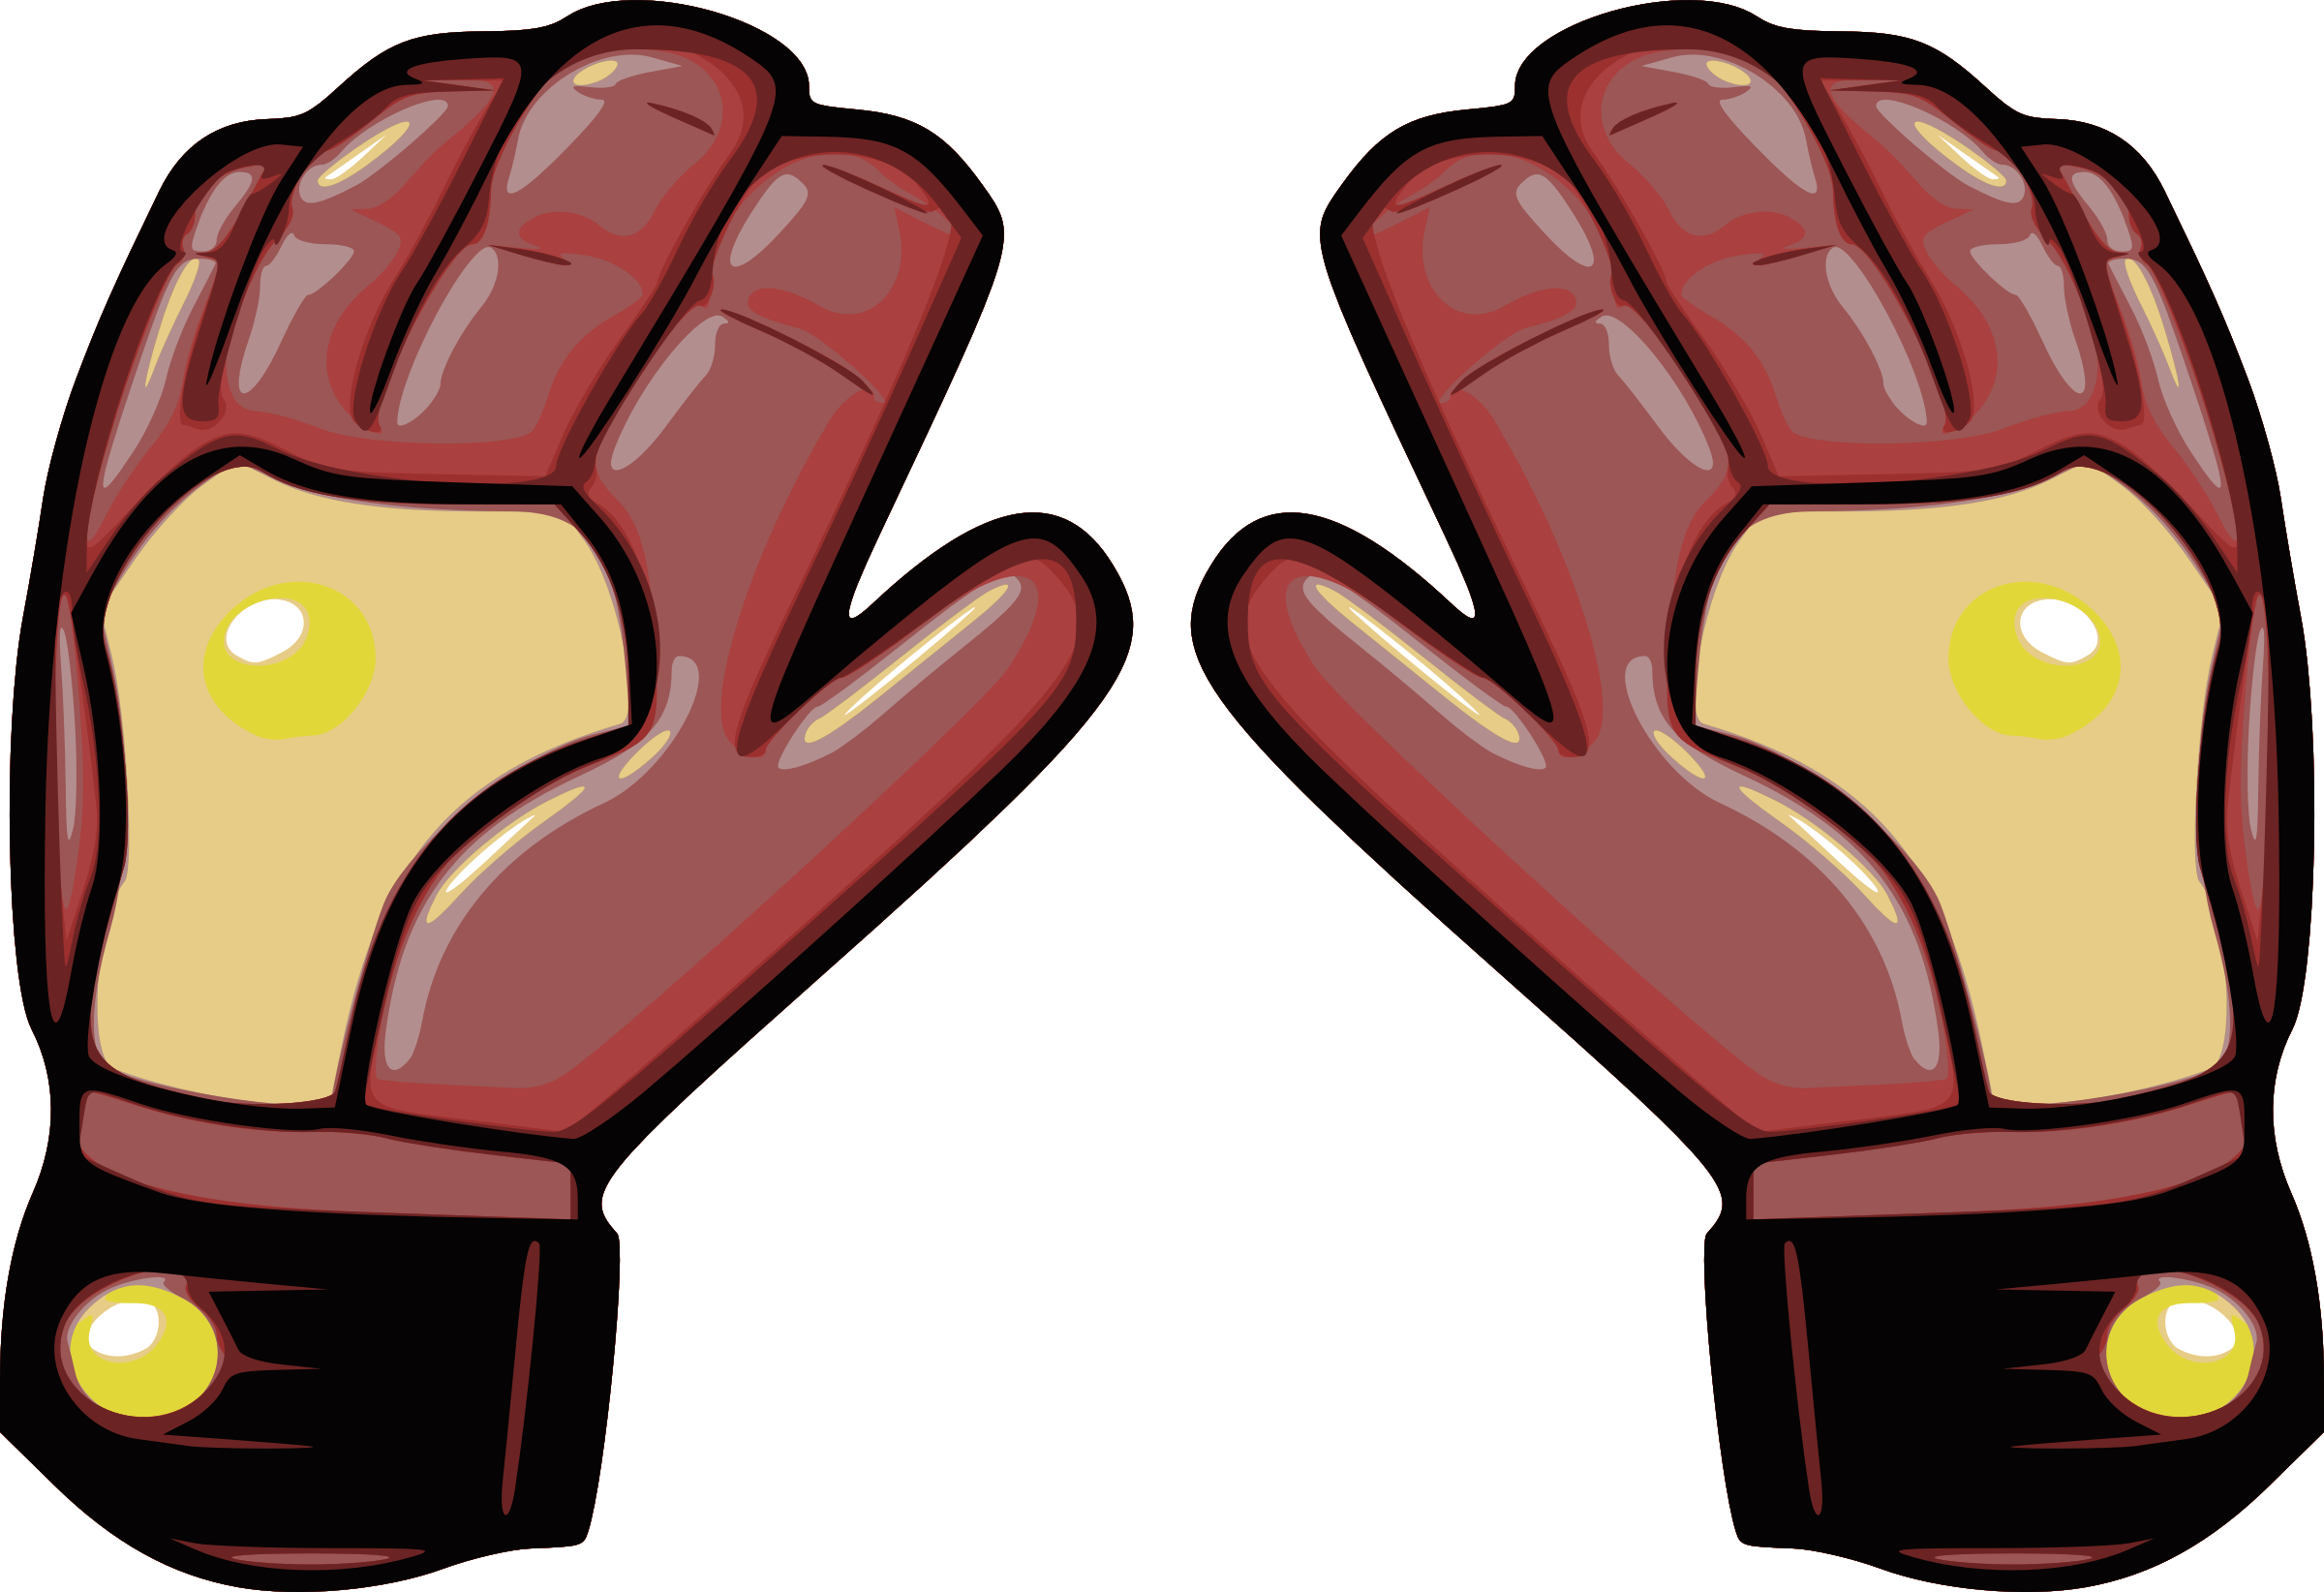 png royalty free library Big image png. Gloves clipart